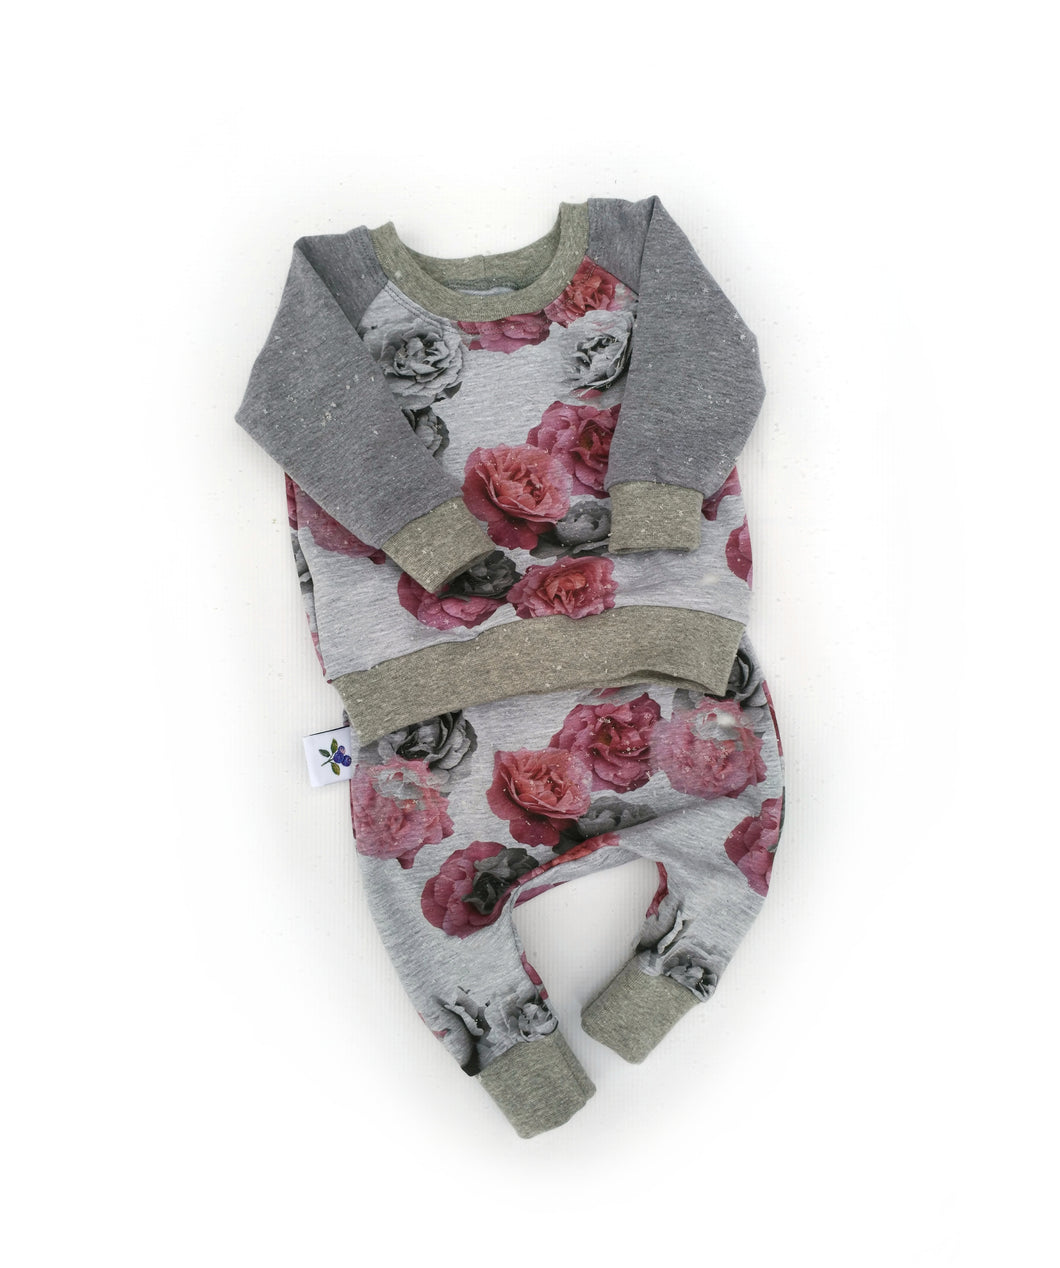 Harem Pants and Sweatshirt Set -  Roses, sizes newborn to 9/12 months